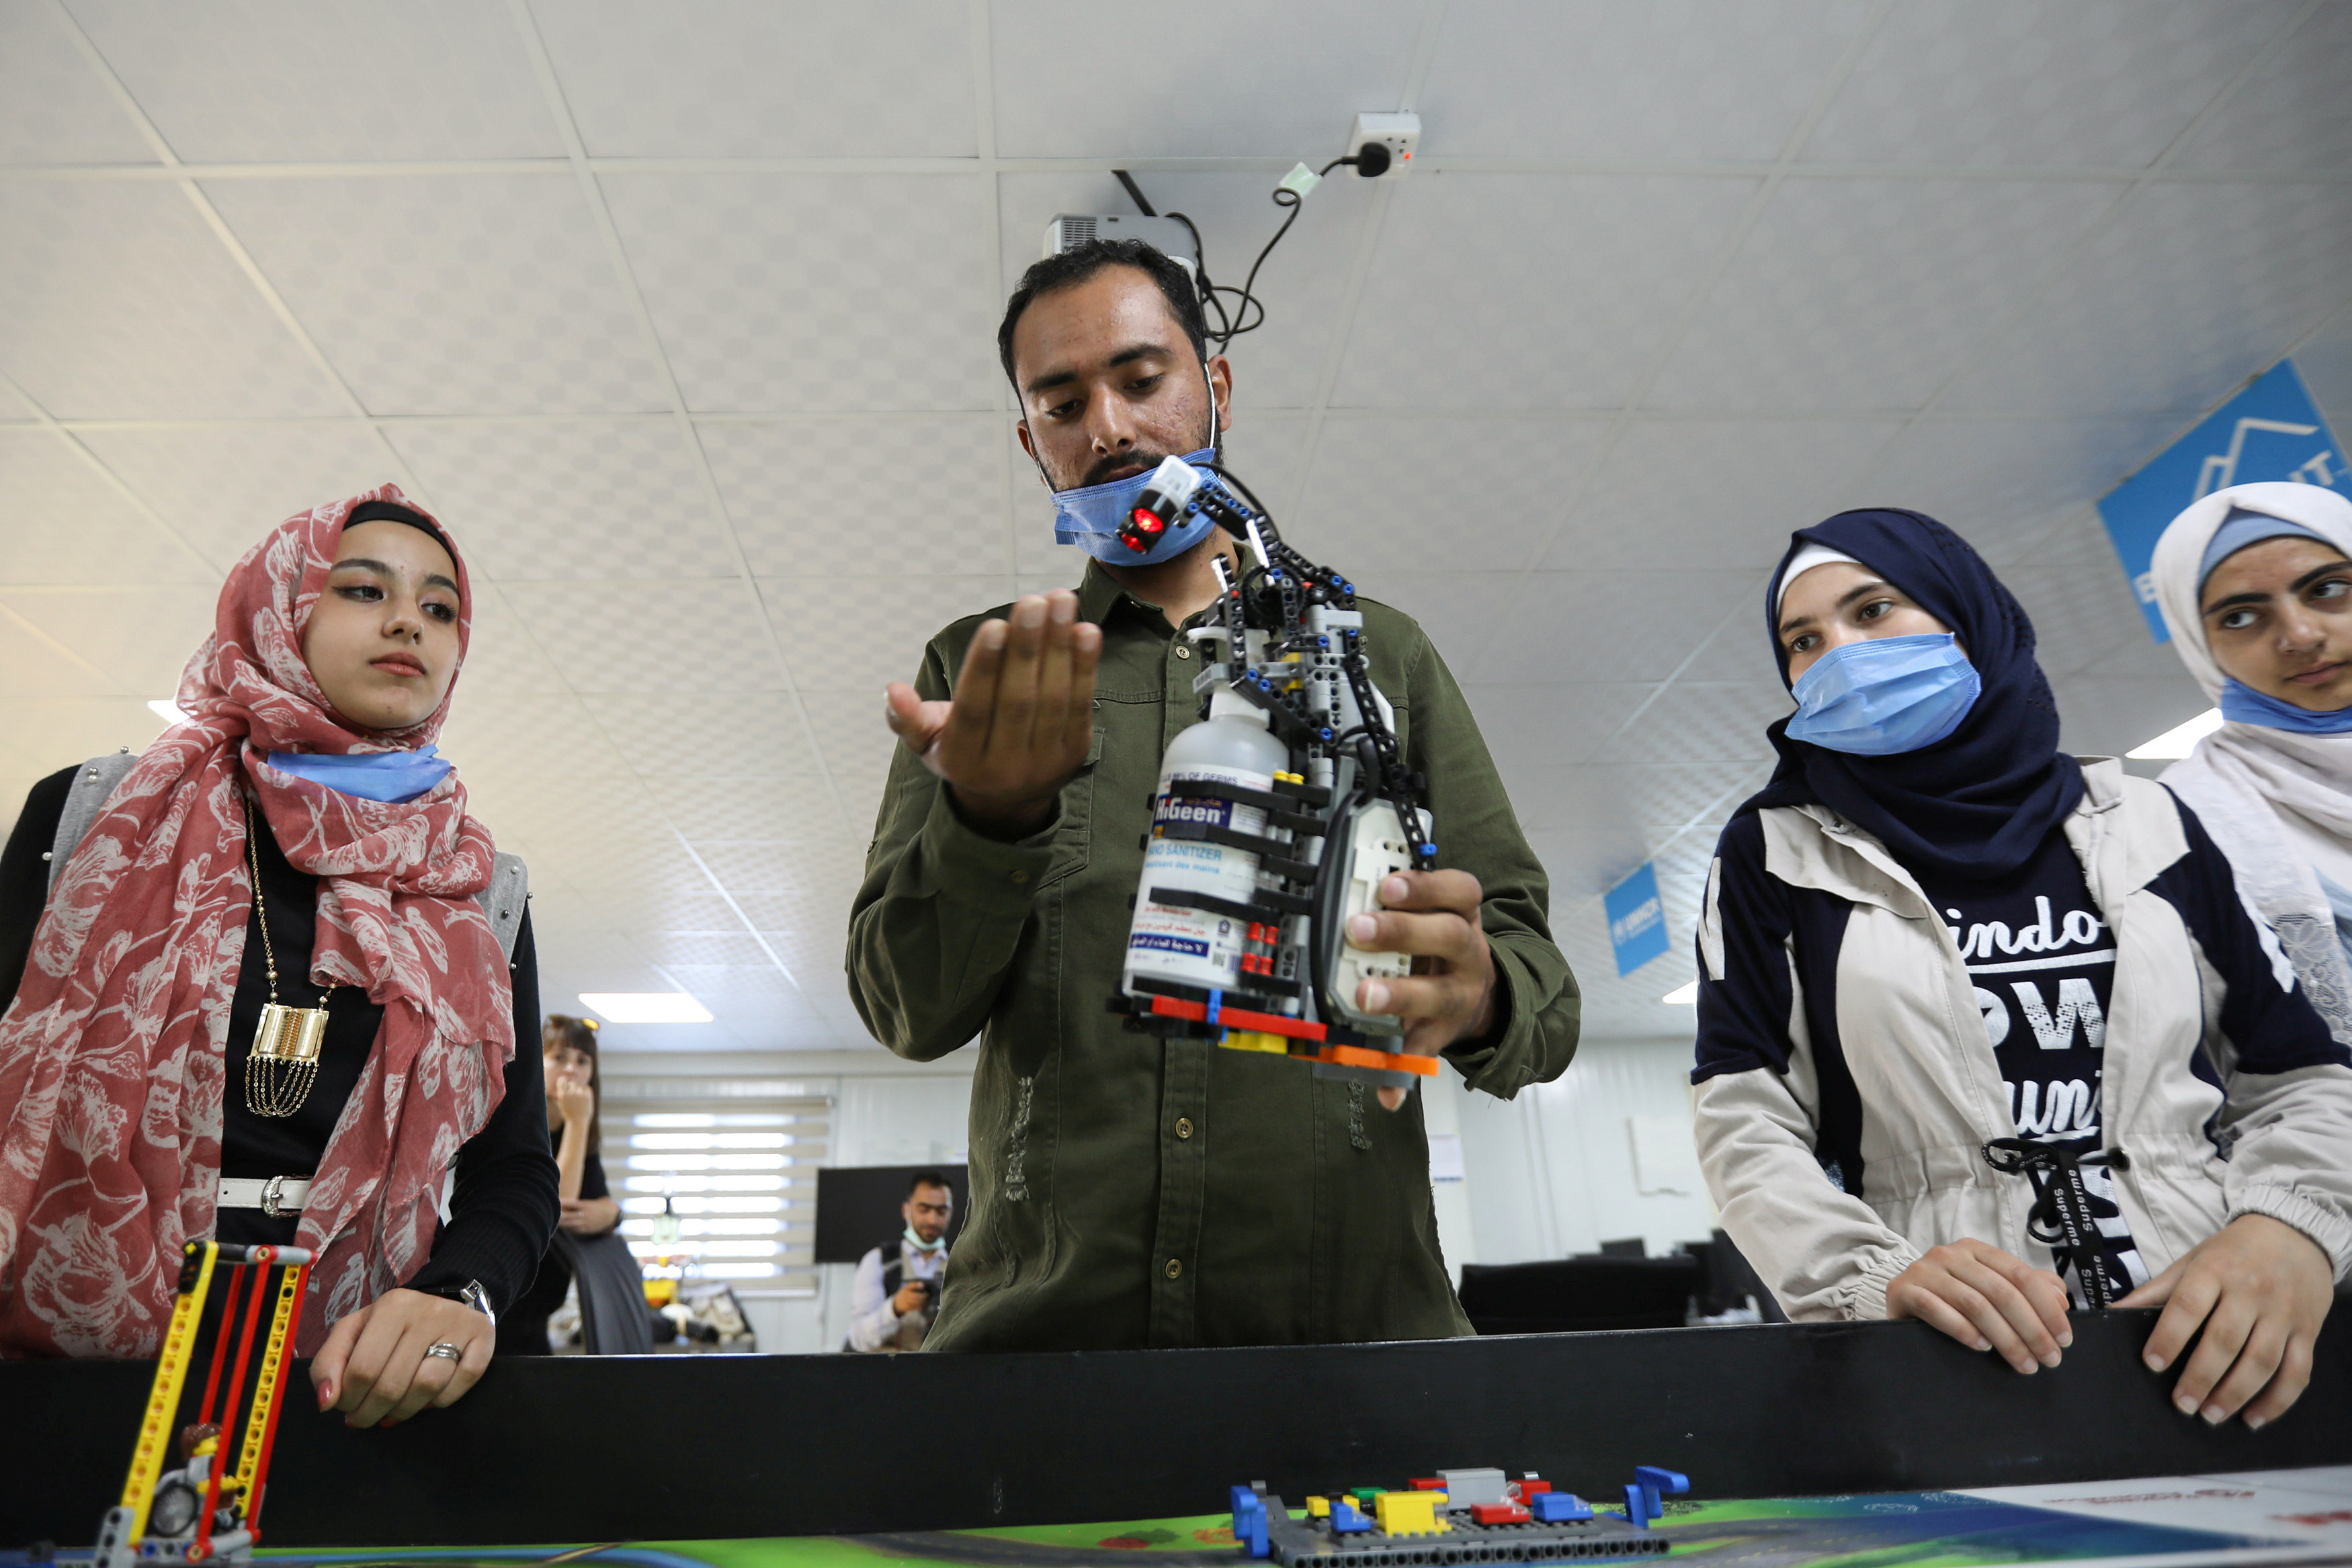 Syrian refugee students and instructor, Yasine Hariri, use his invention that is a robot prototype that automatically dispenses sanitiser to avoid contact and combat the spread of the coronavirus disease (COVID-19) as a part of the camp's UNHCR-led Innovation Lab program, at the Zaatari refugee camp in the Jordanian city of Mafraq, near the border with Syria, July 14, 2020. Picture taken July 14, 2020